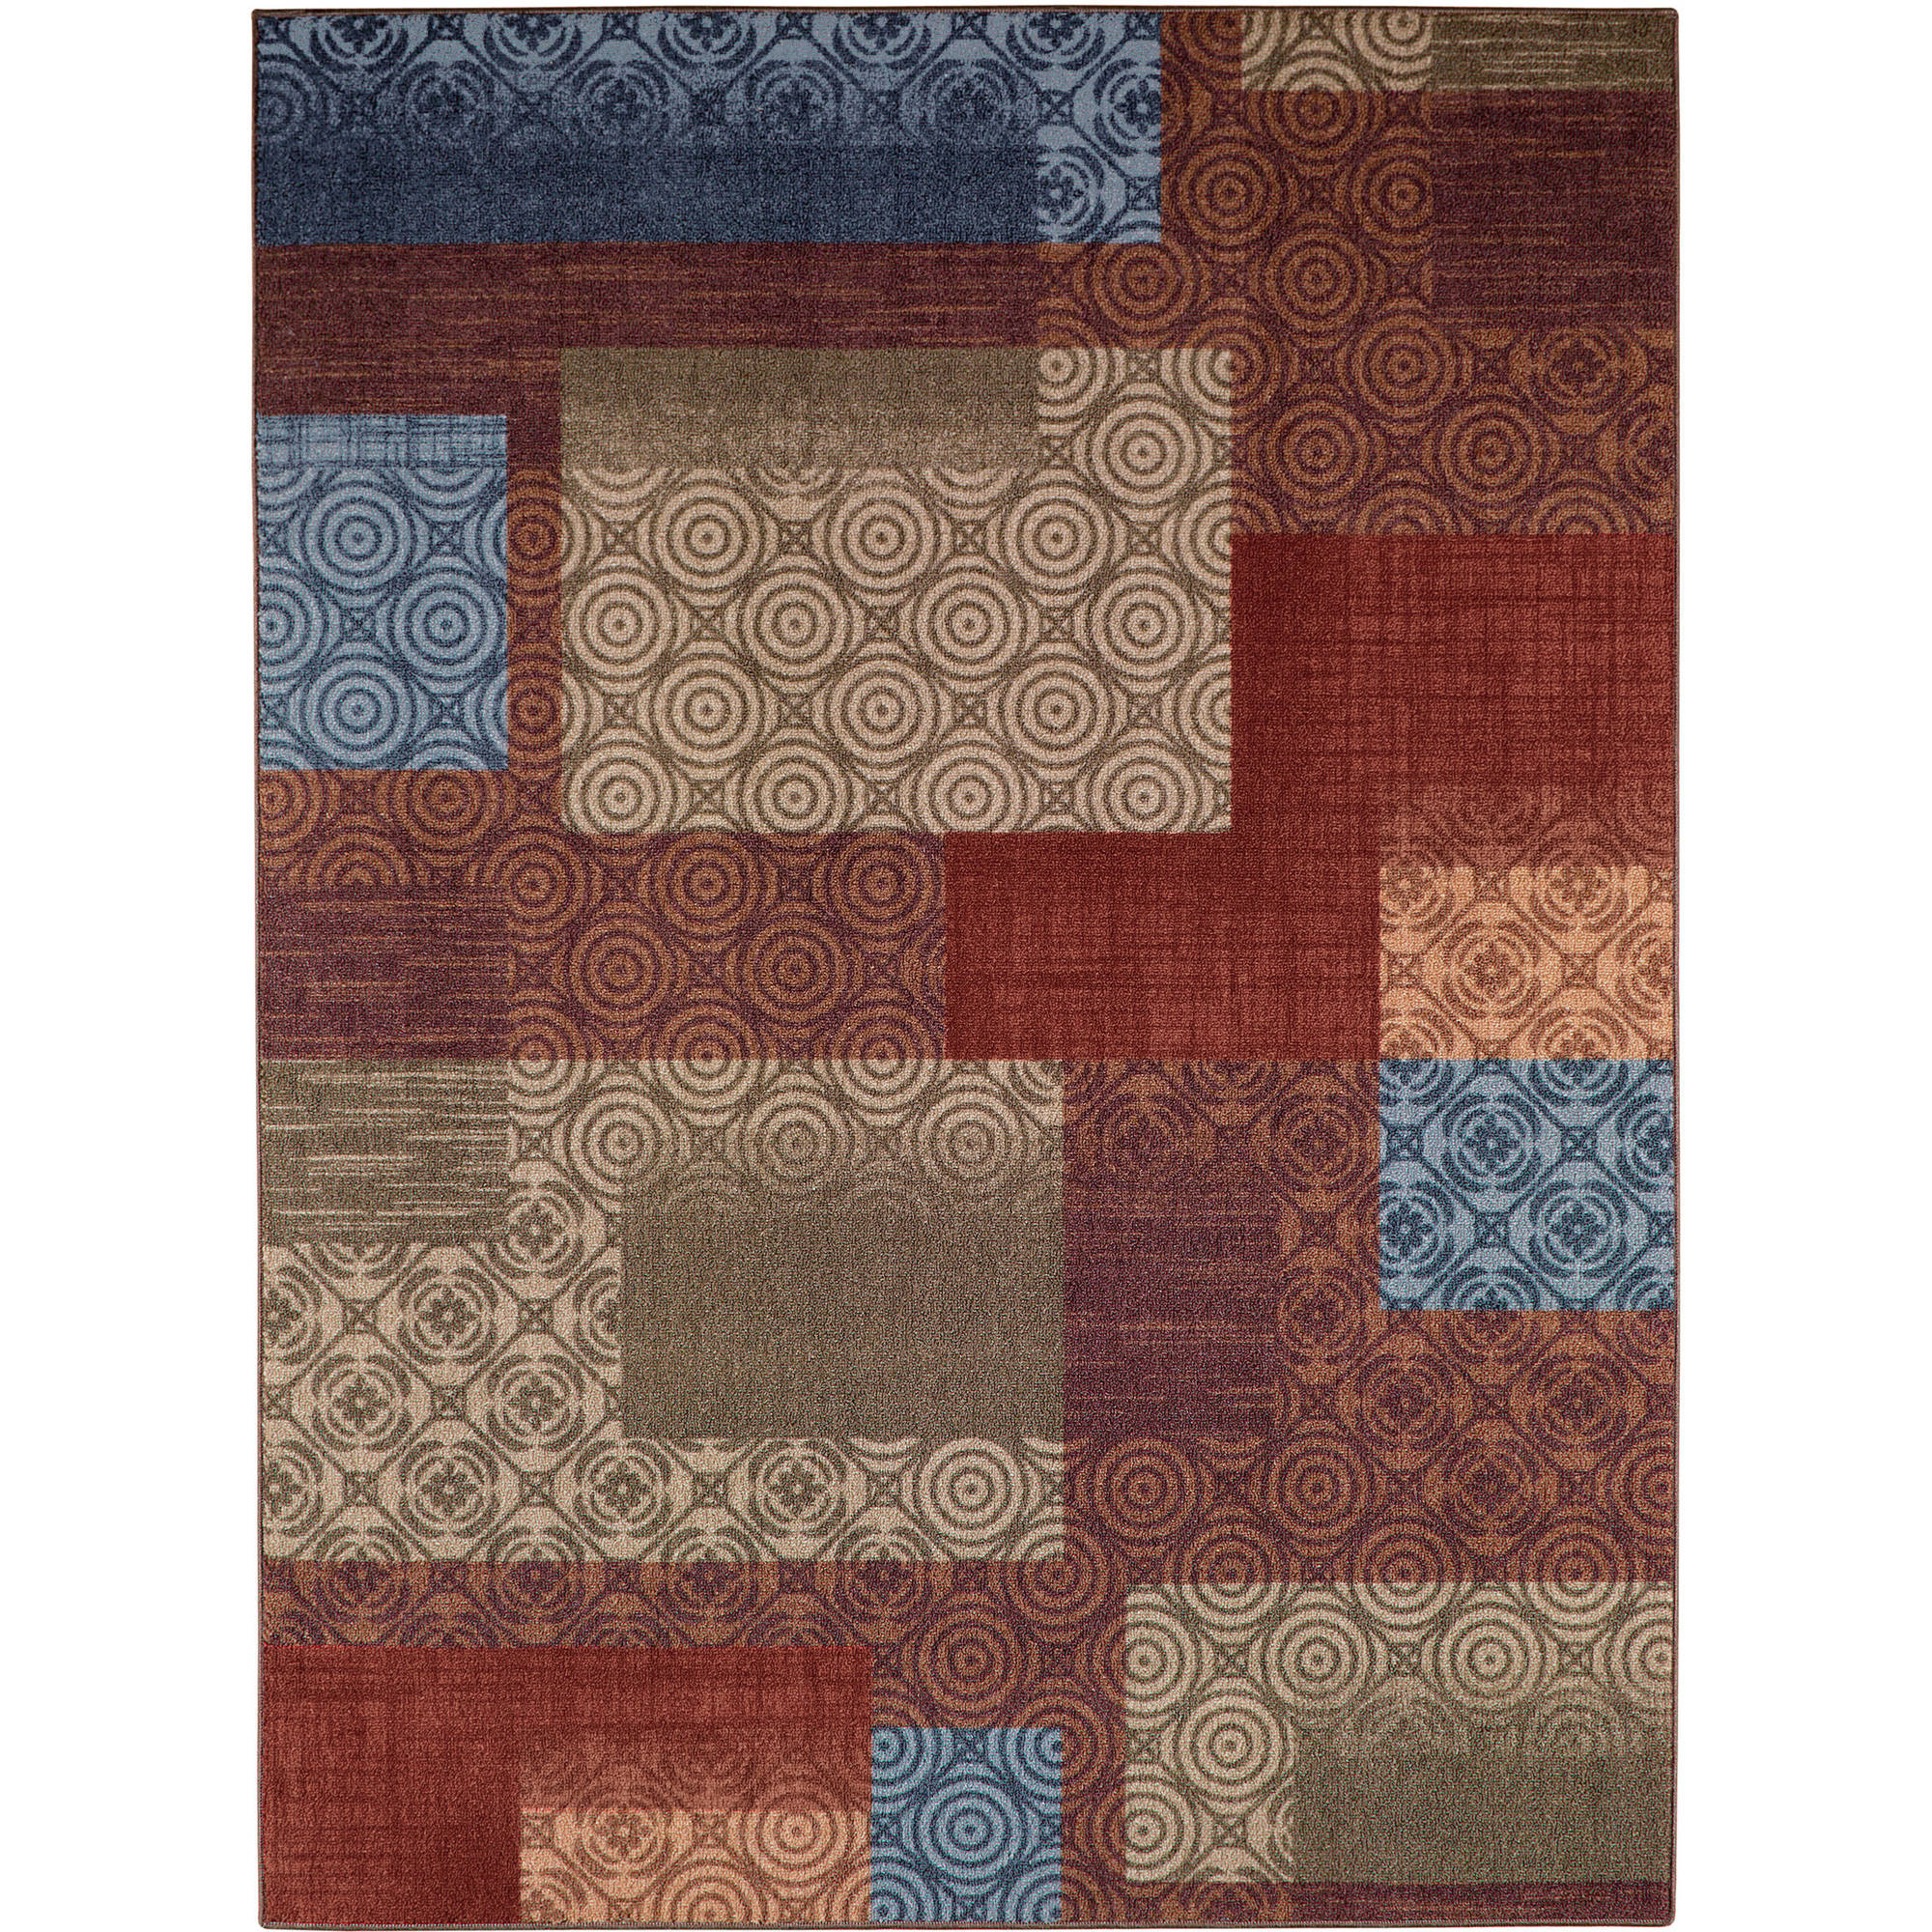 Mainstays Payton Nylon Area Rugs or Runner, Available in 5' x 7', 7' x 10', and more sizes for Living Room, Family Room, Bedroom, Hallway, Non Skid for small rugs, Washable and Spot Clean